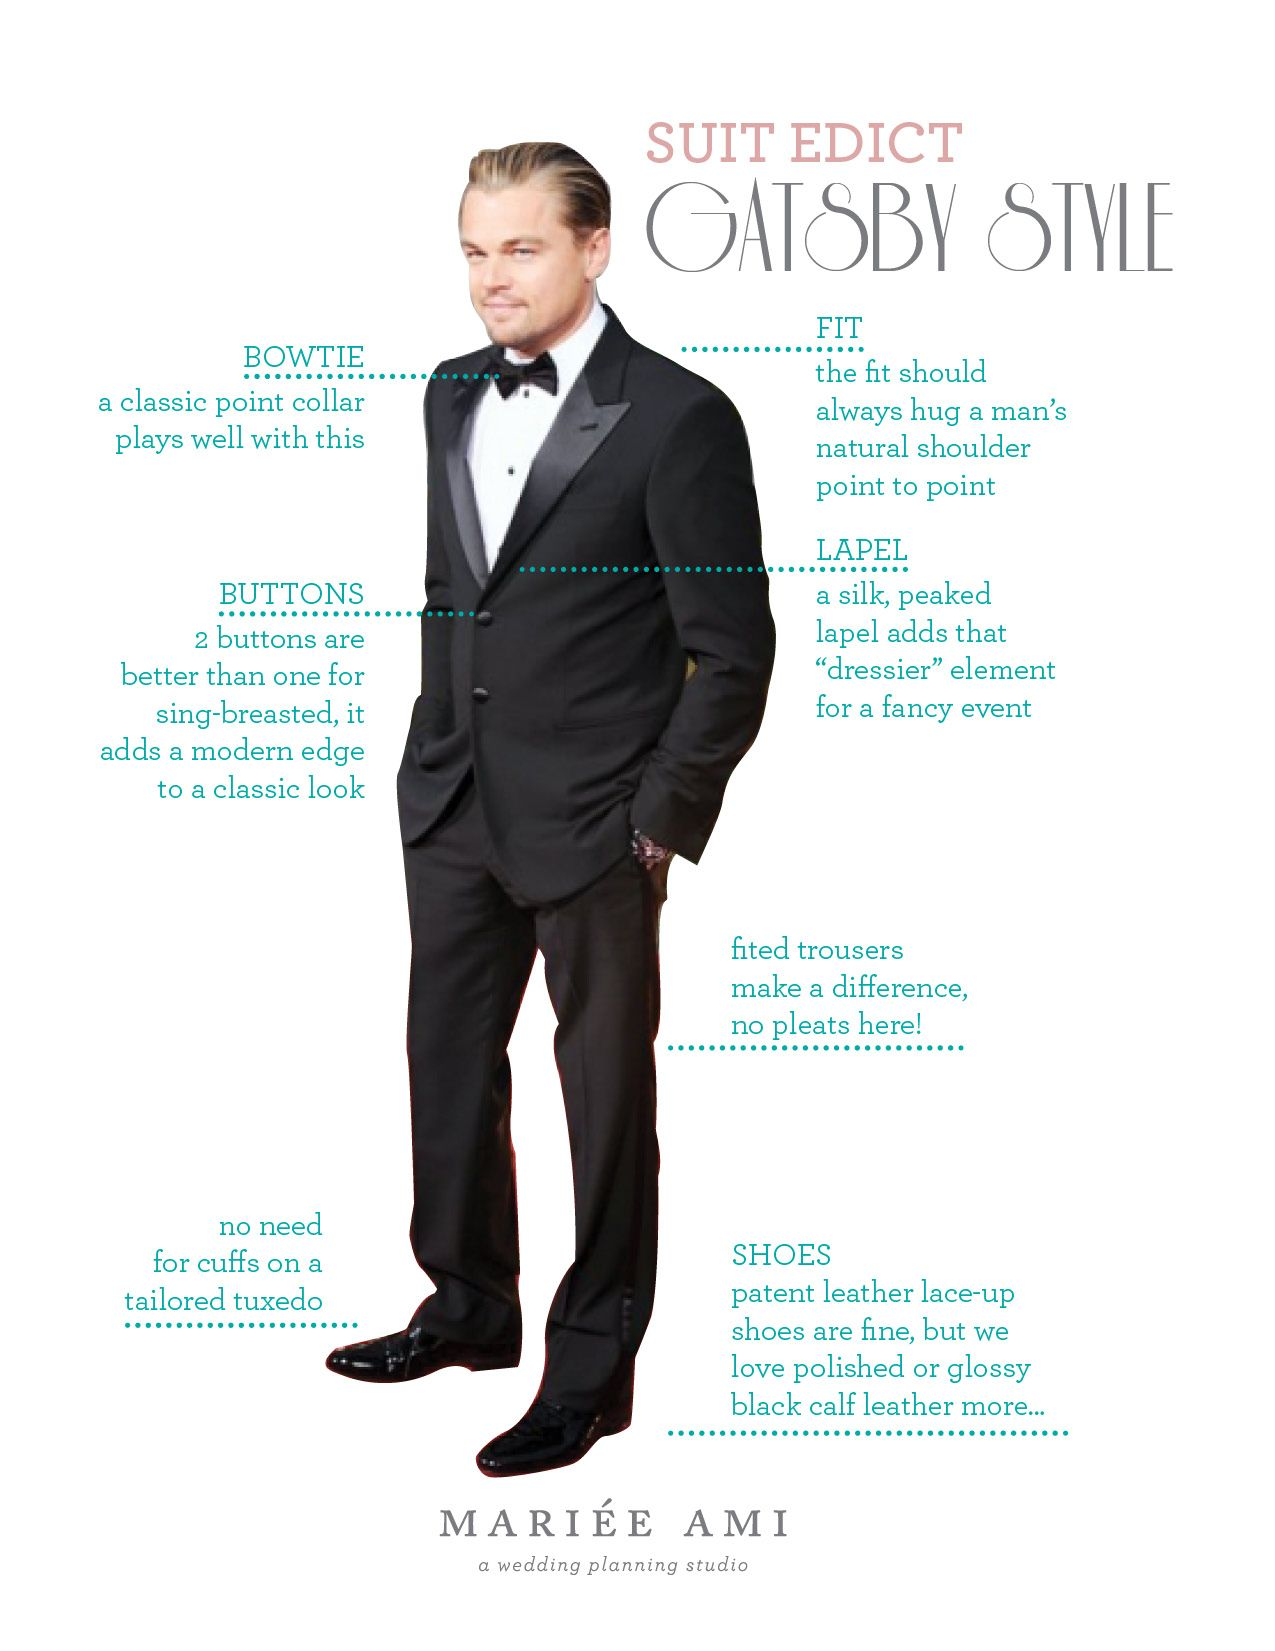 27bb0ecb2ae The Great Gatsby STYLE How to Wear a Tuxedo - Leo Edition by Mariee Ami  Wedding Planning Studio